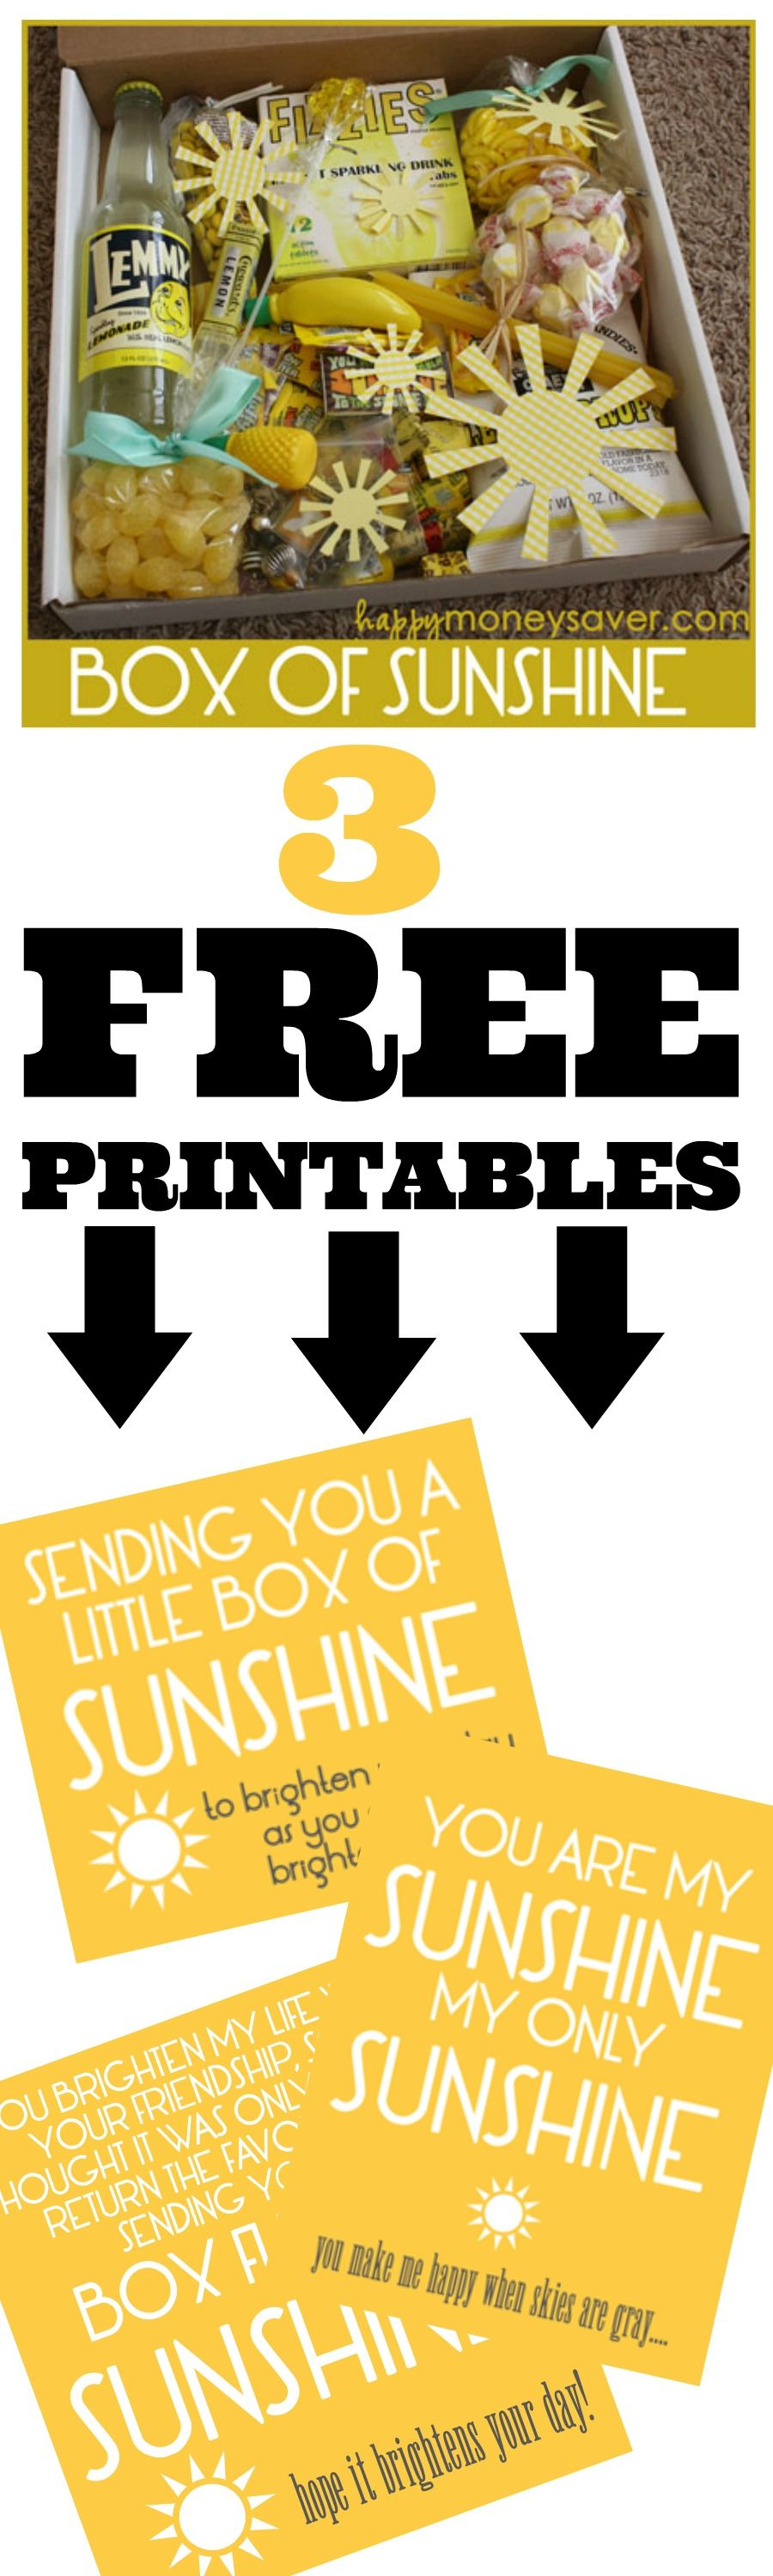 1b71a025ab Free printable - Send a Box of Sunshine to brighten someones day! The  printables say you are my sunshine